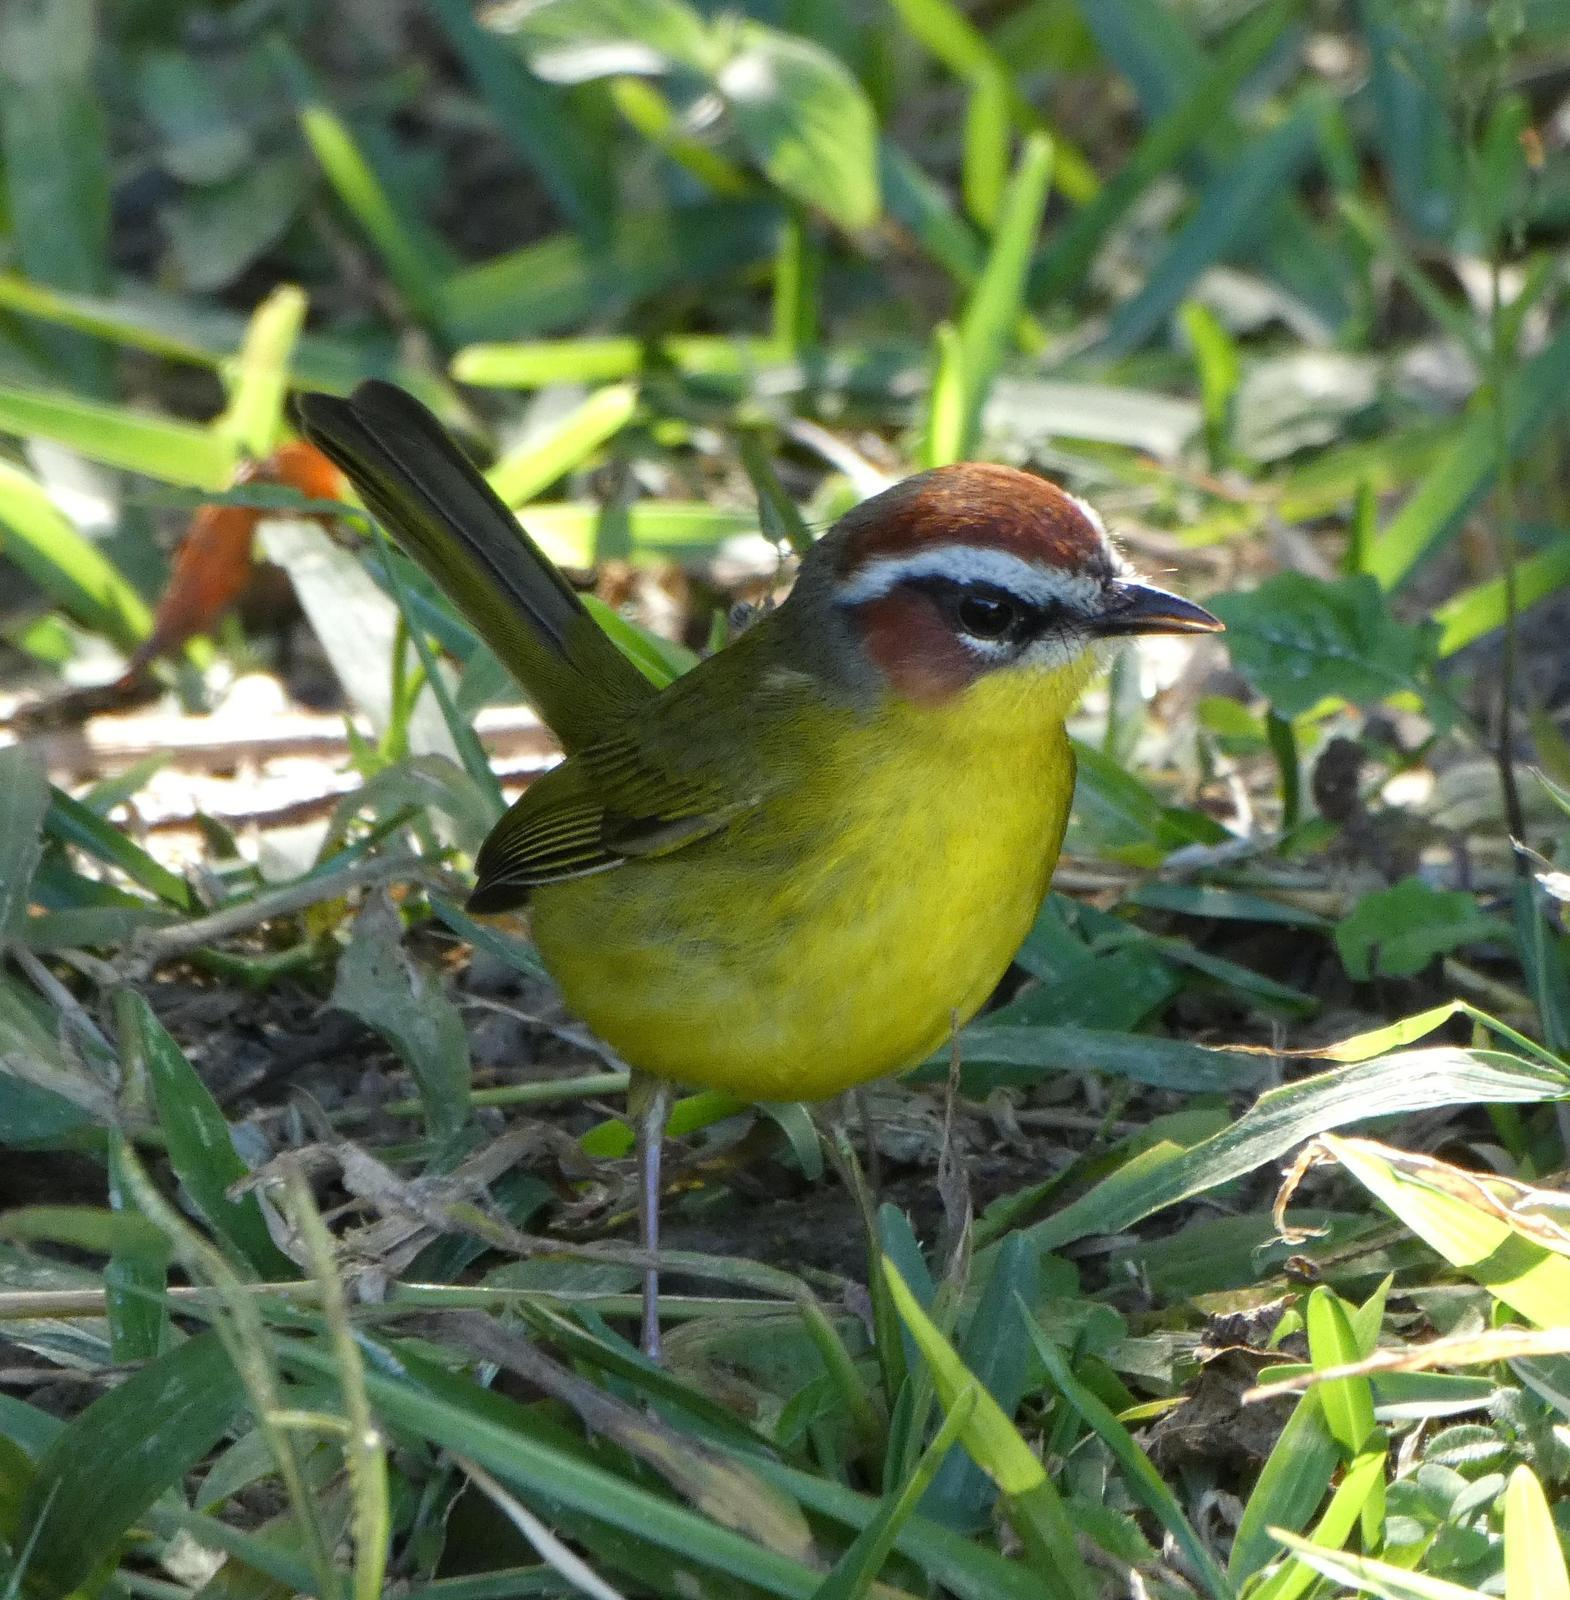 Rufous-capped Warbler Photo by Phil Ryan